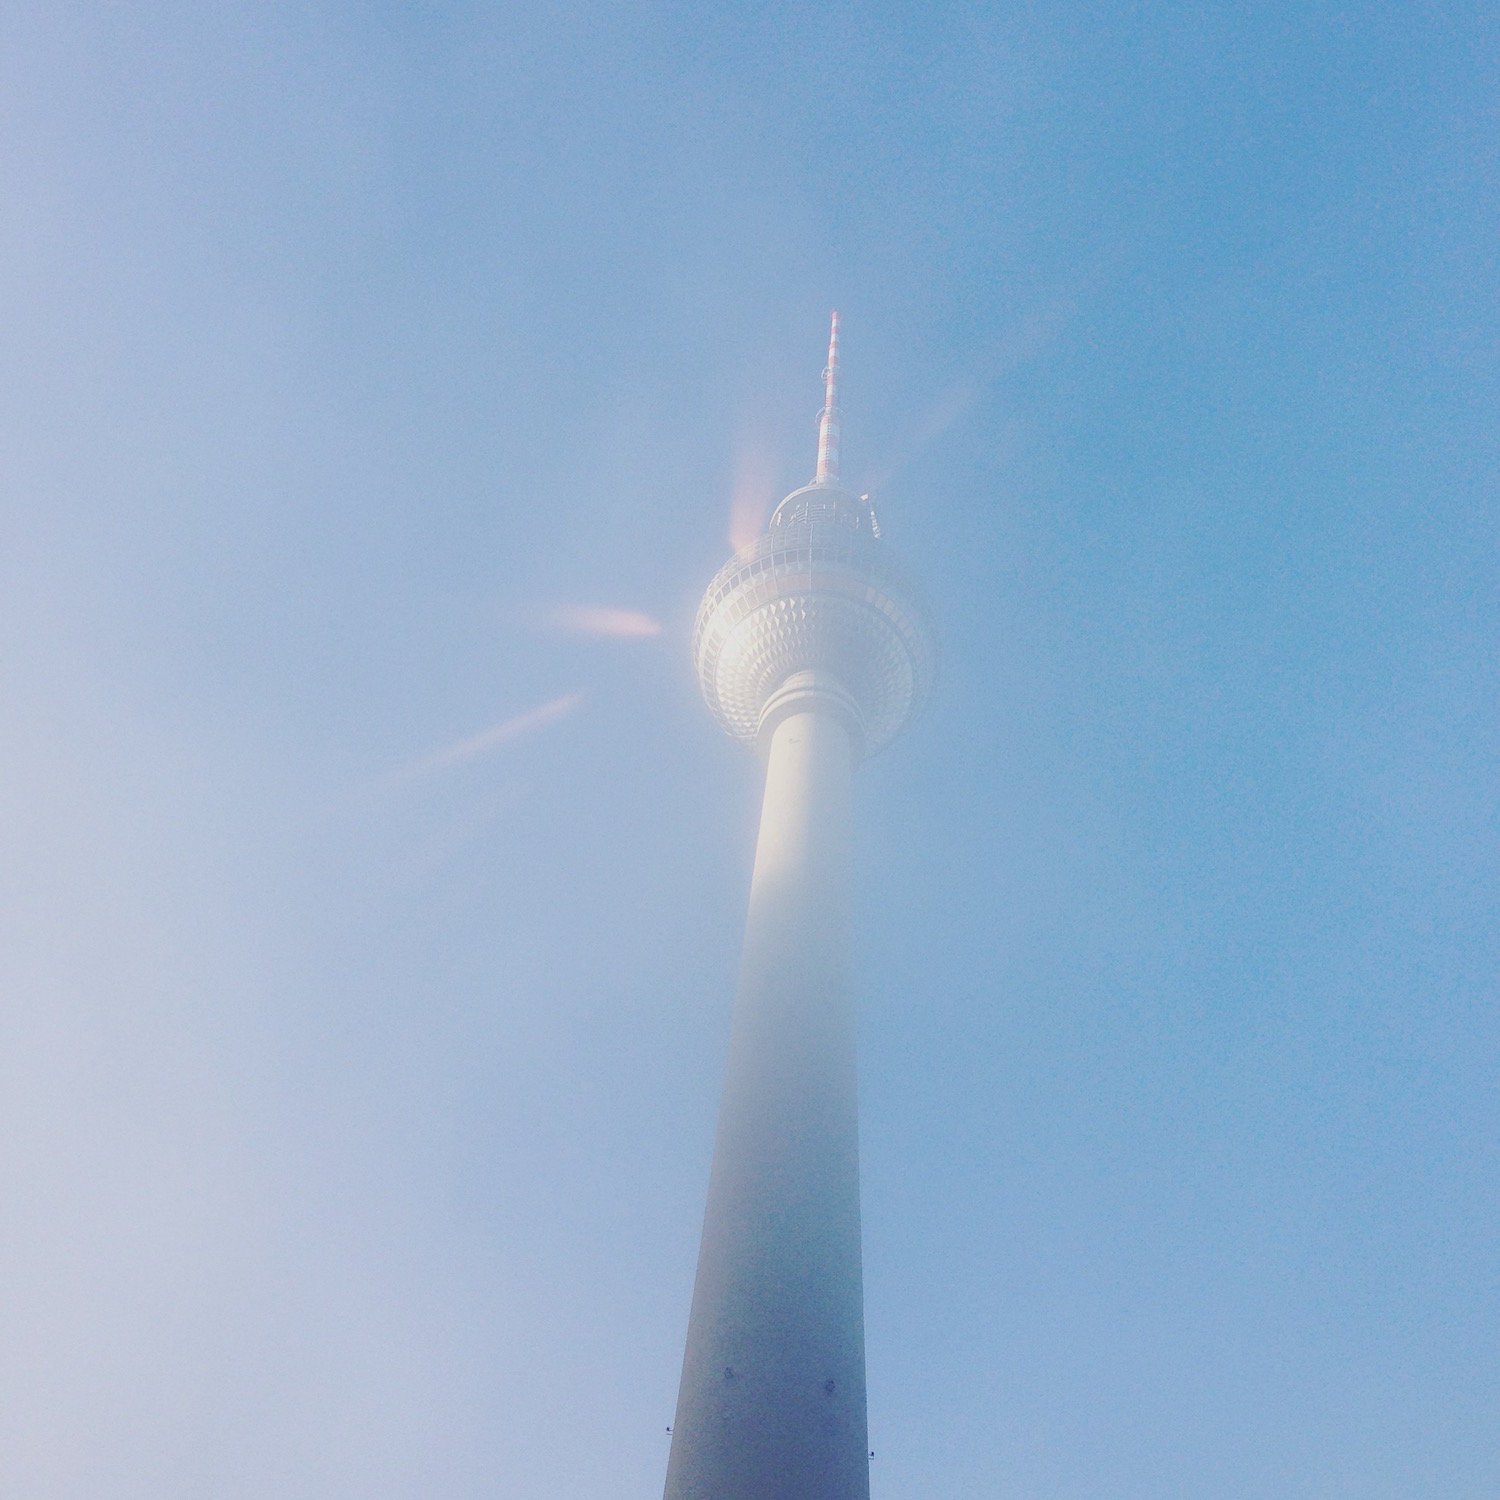 The Berlin TV Tower at dawn (Eat Me. Drink Me.)